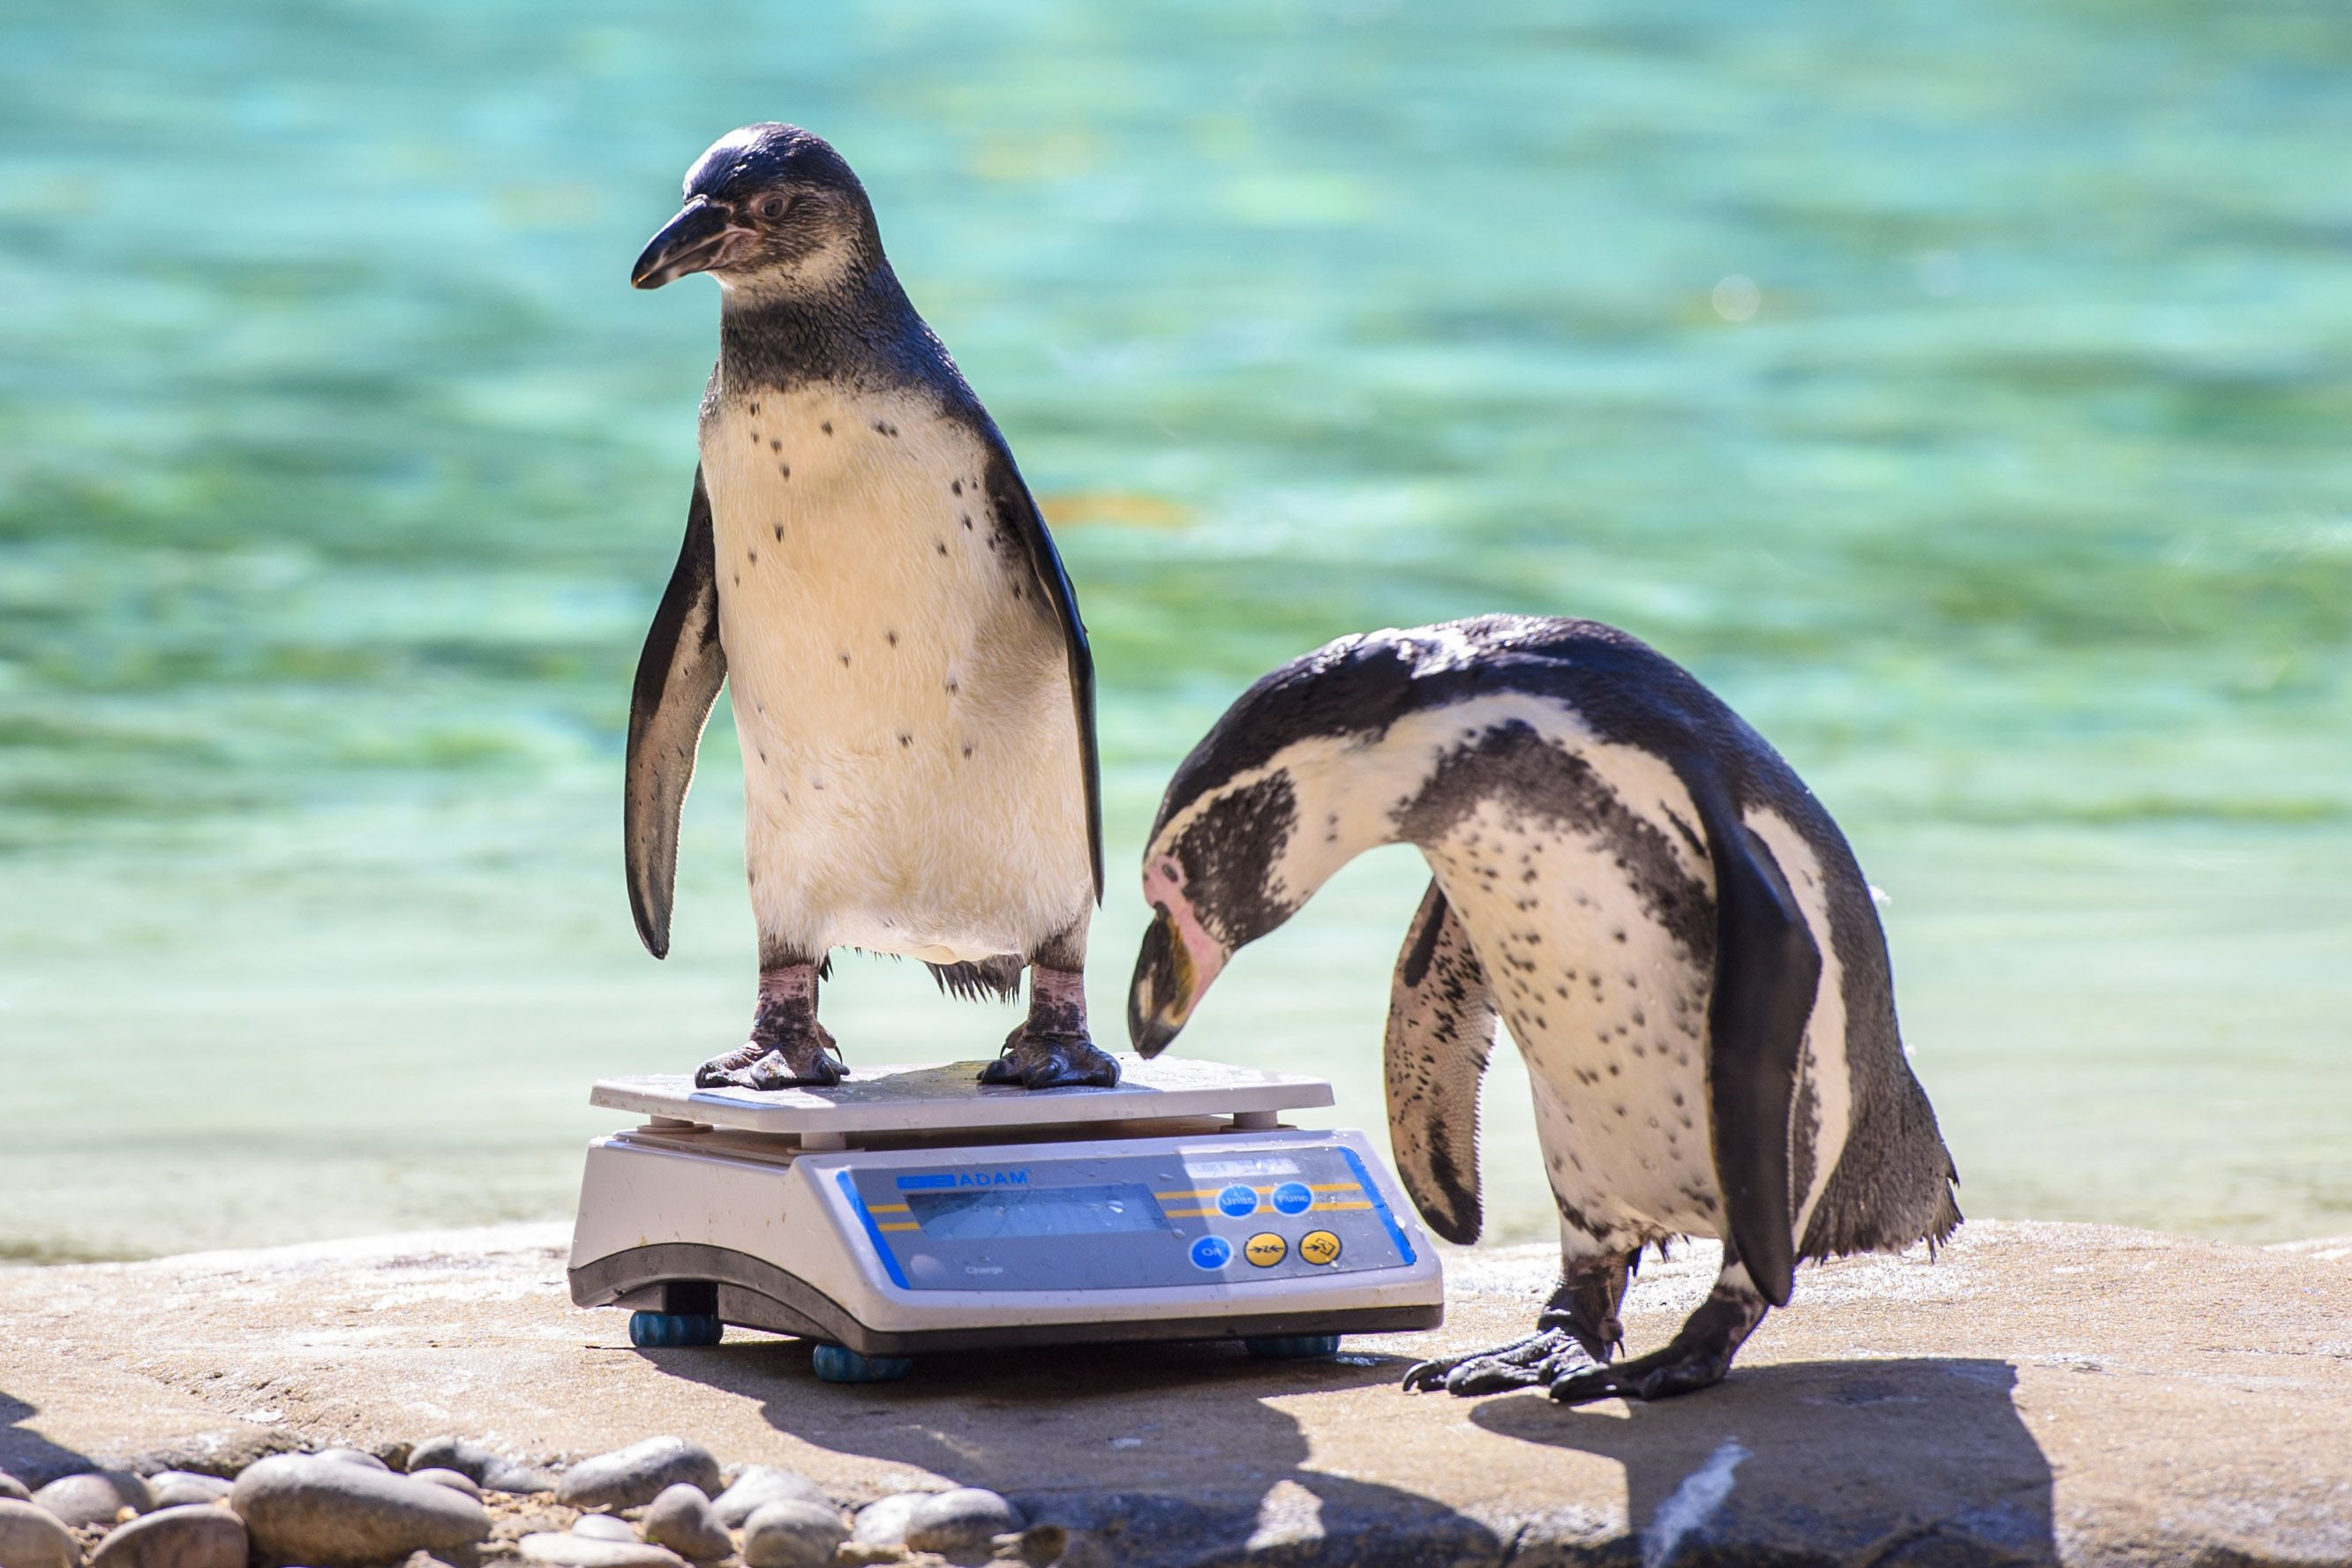 Humboldt penguins are weighed at rhe annual weigh-in, at the London Zoo 08/24/16.